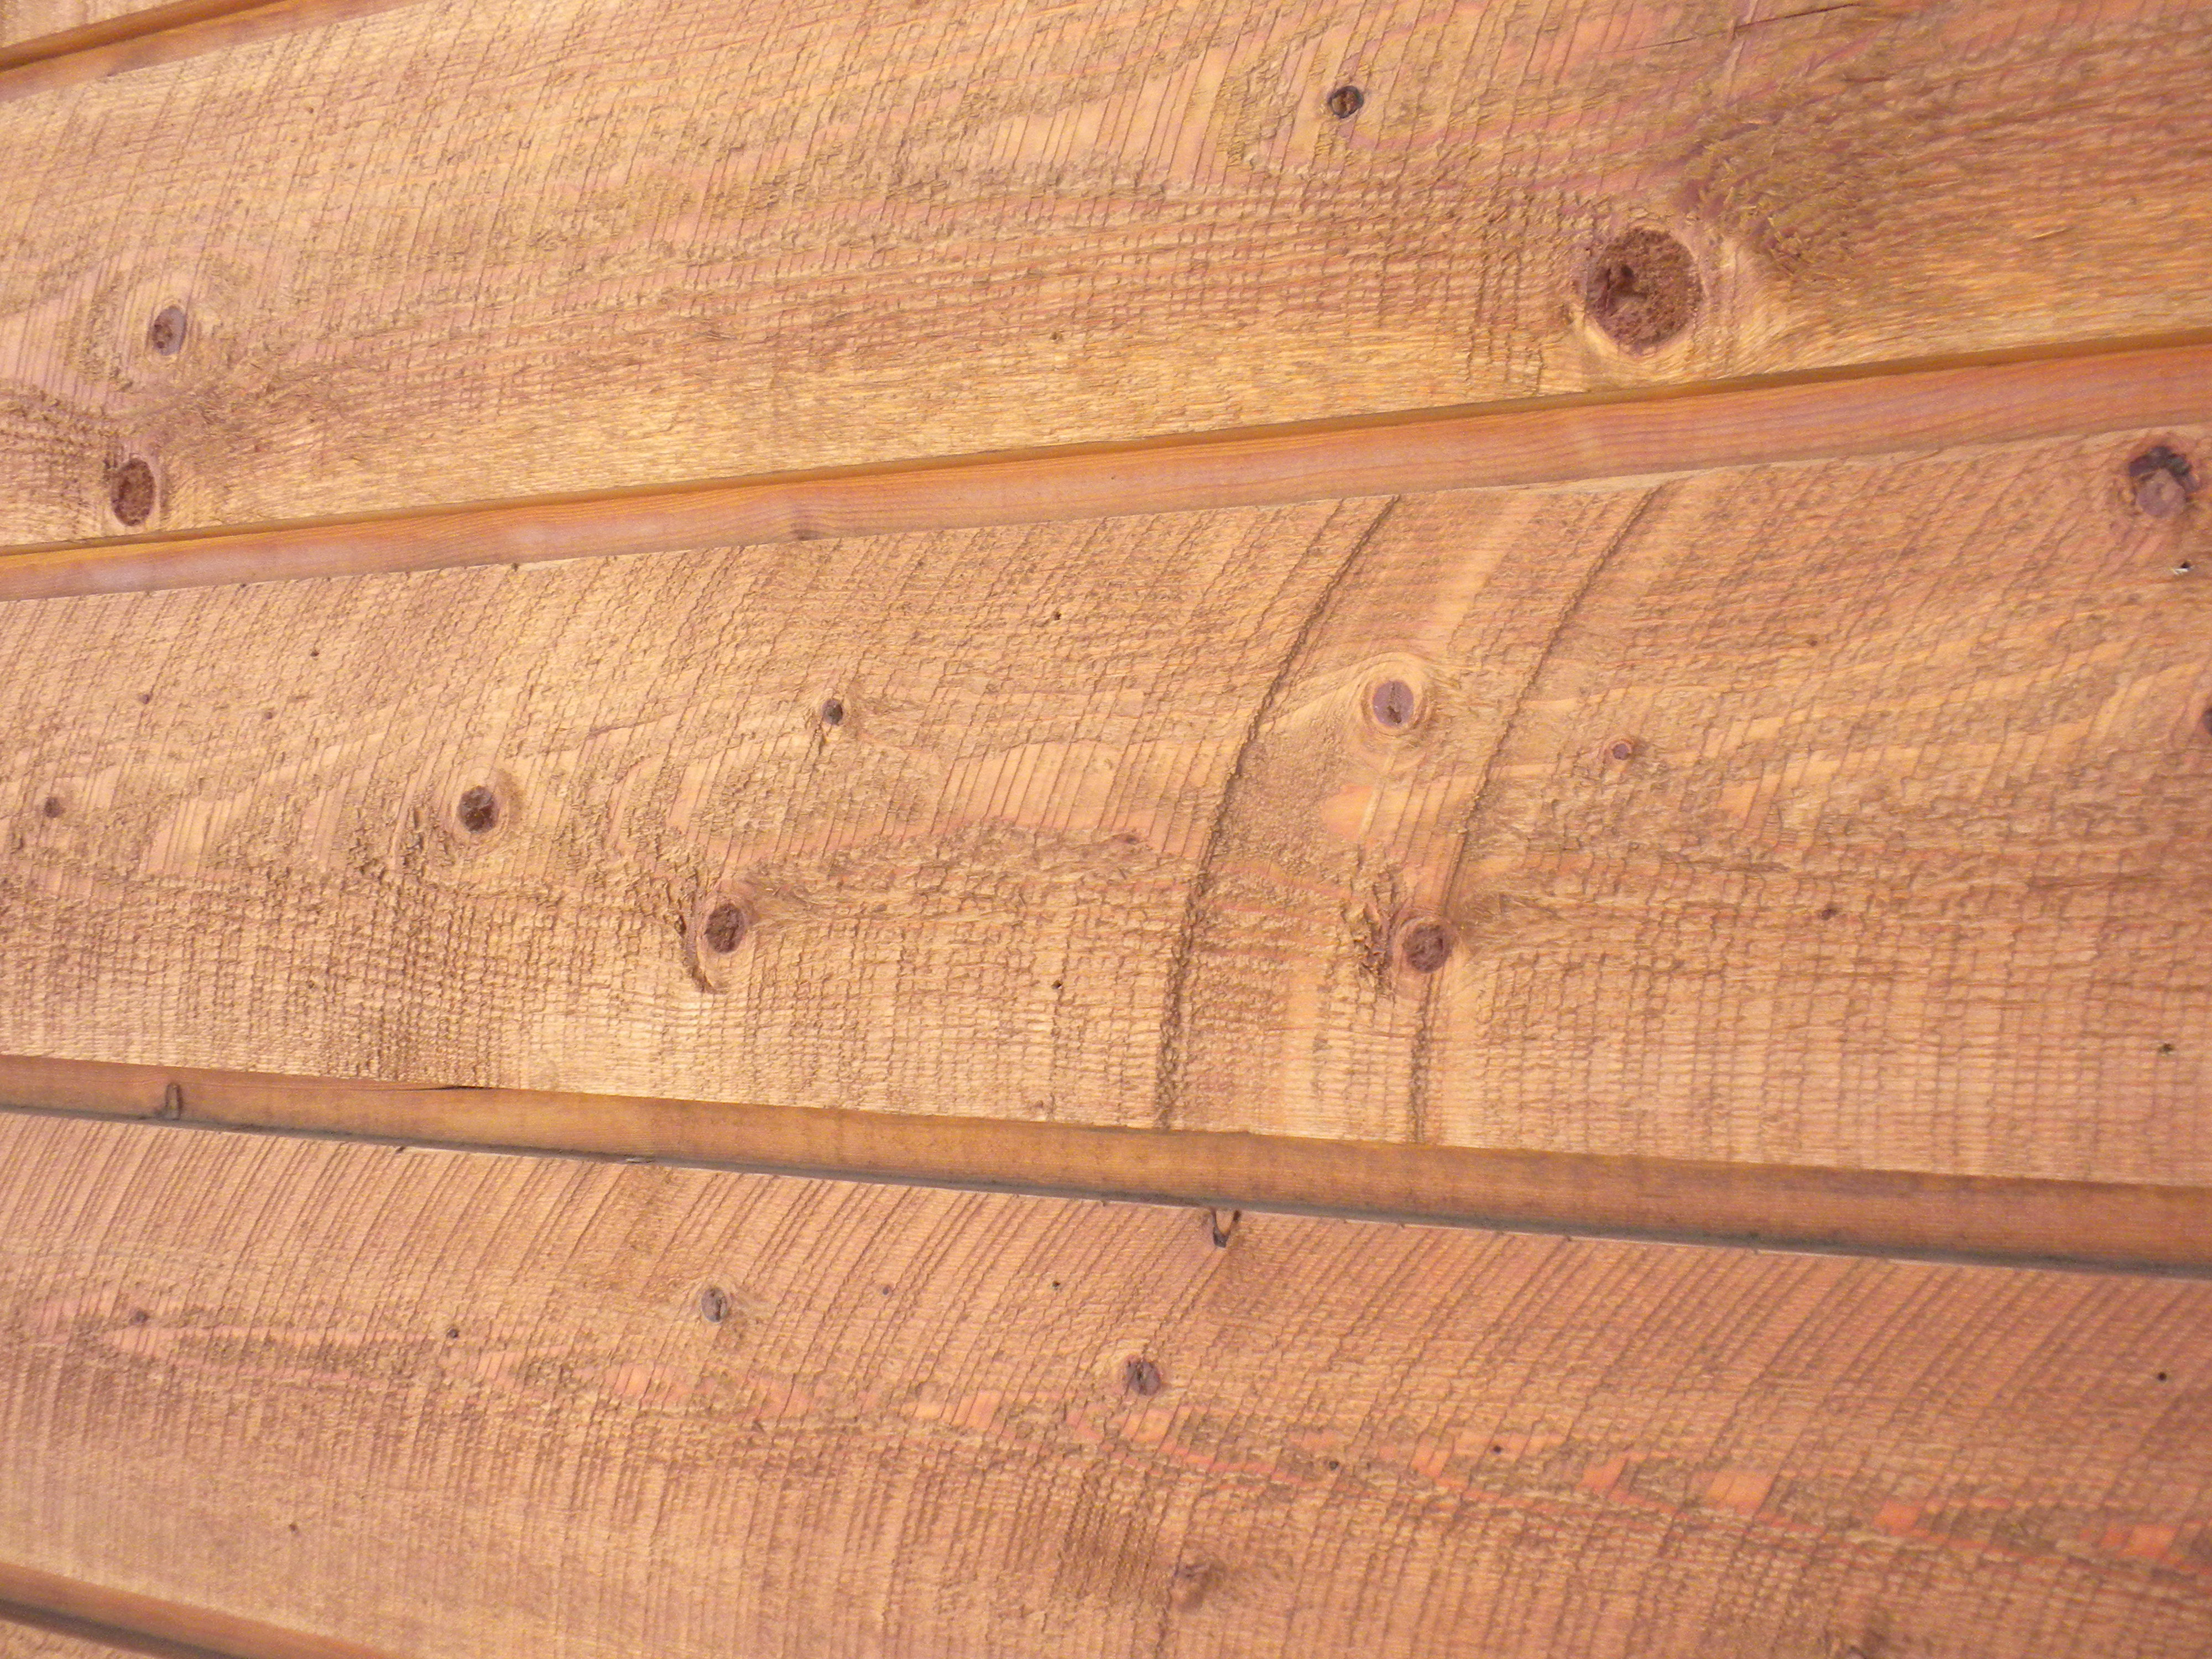 Channel Rustic Wood Siding: Montana Rustic Siding